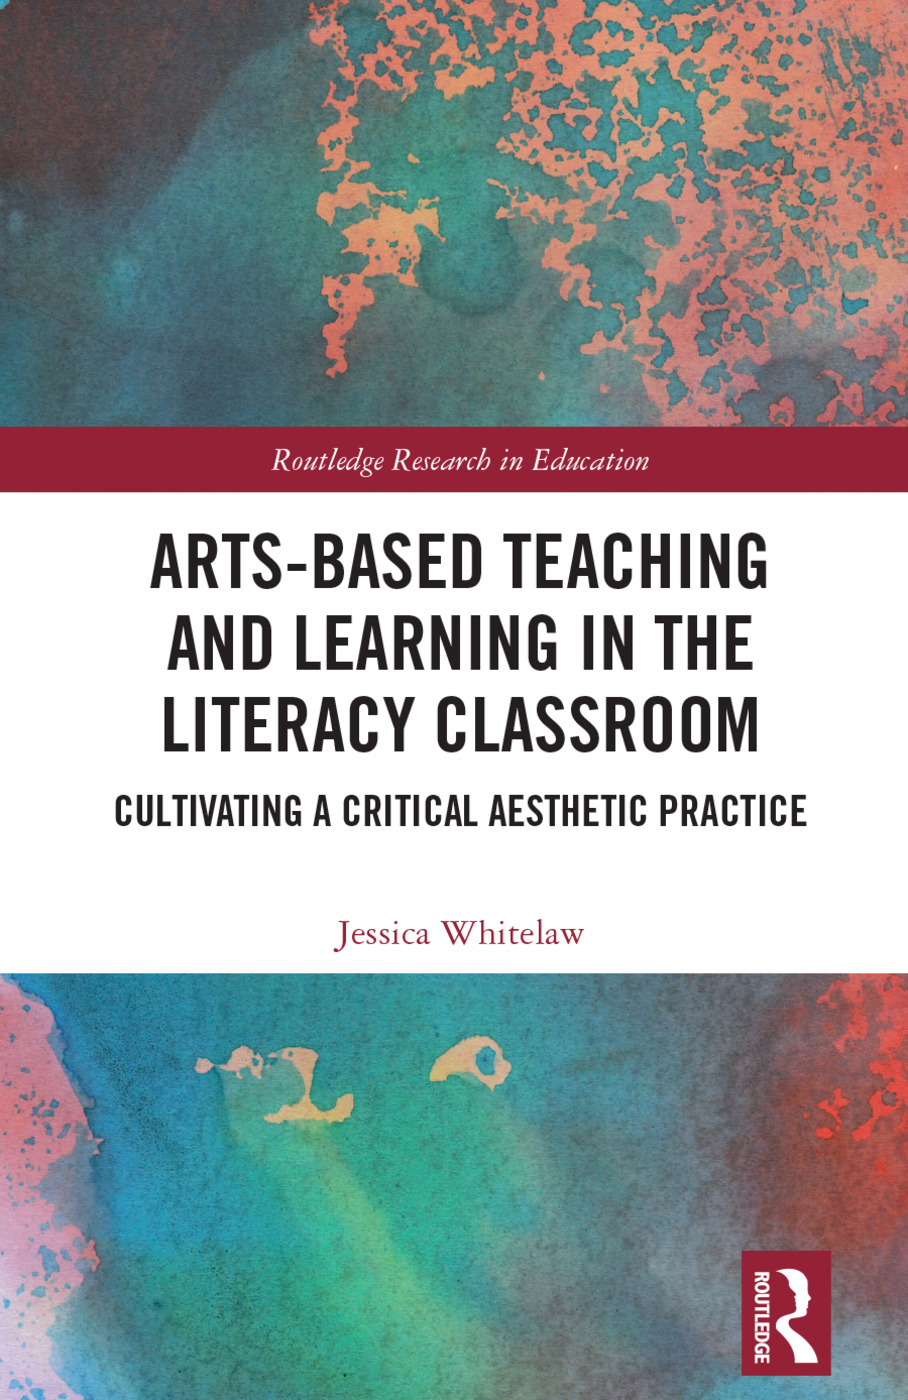 Arts-Based Teaching and Learning in the Literacy Classroom: Cultivating a Critical Aesthetic Practice book cover